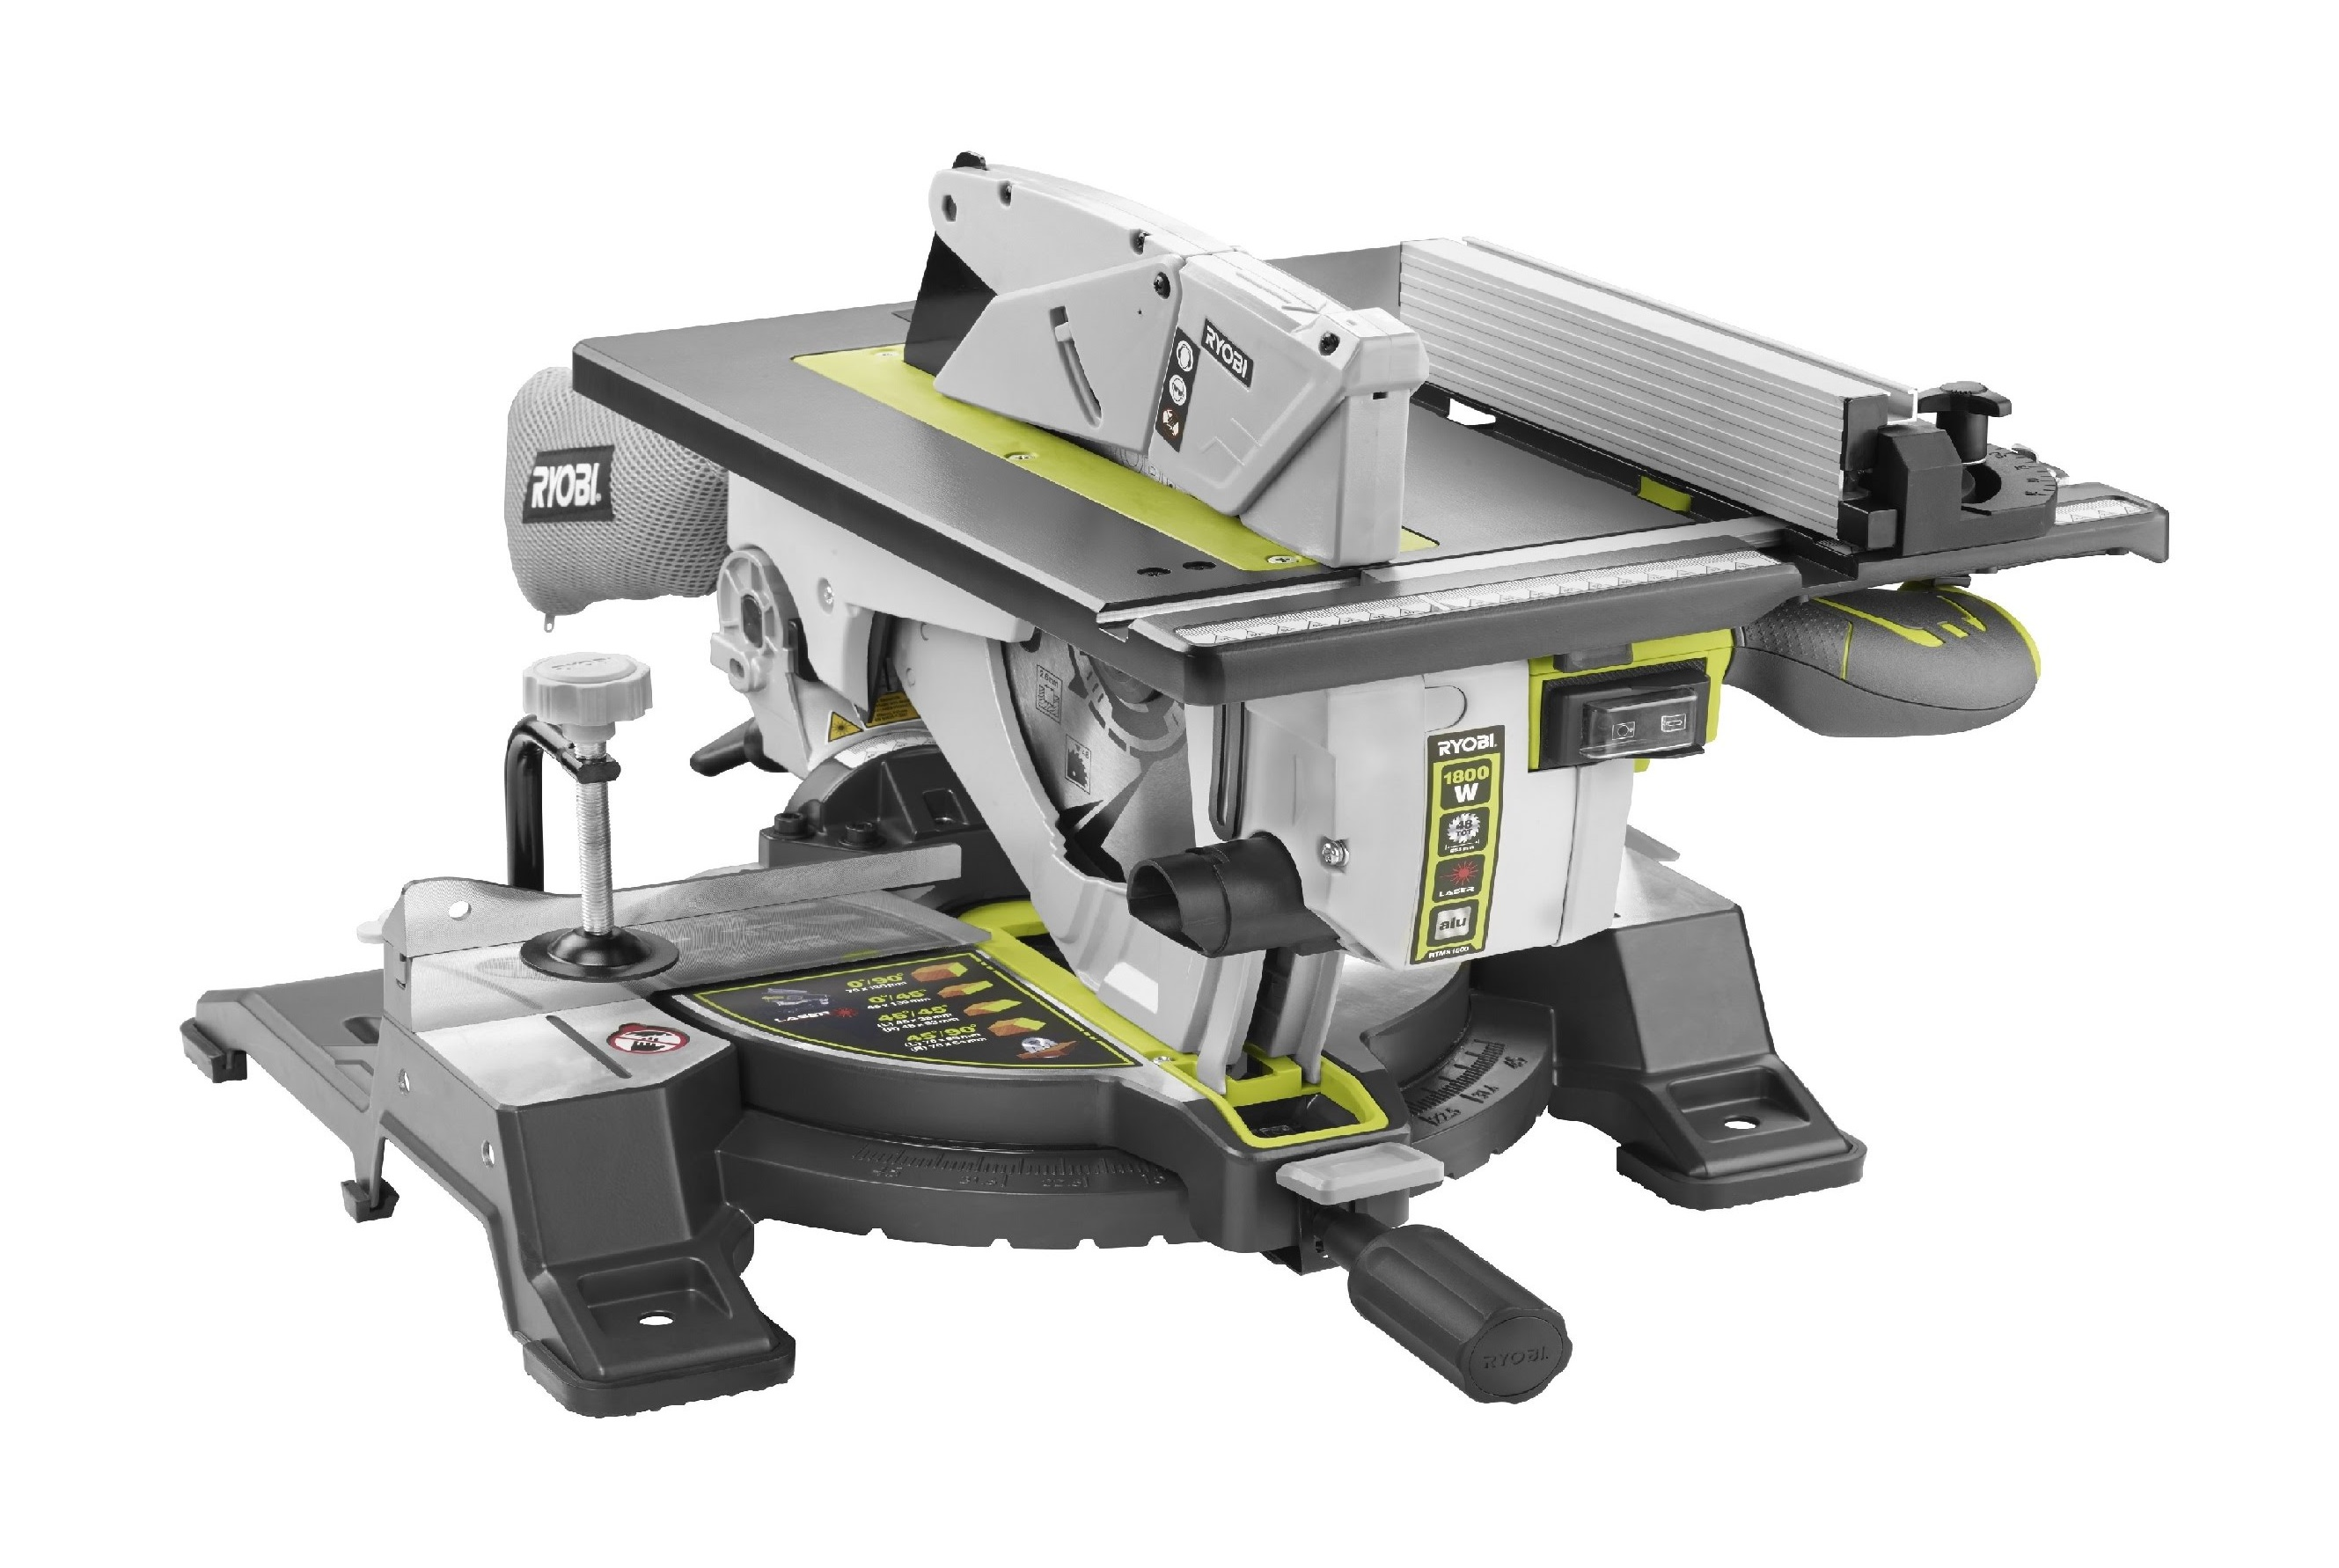 Crazy news ryobi rtms1800 miter saw table saw combo spotted tool ok so before we get started with this news article let me tell you guys that this tool most likely wont be coming here to the usa ill tell you why at greentooth